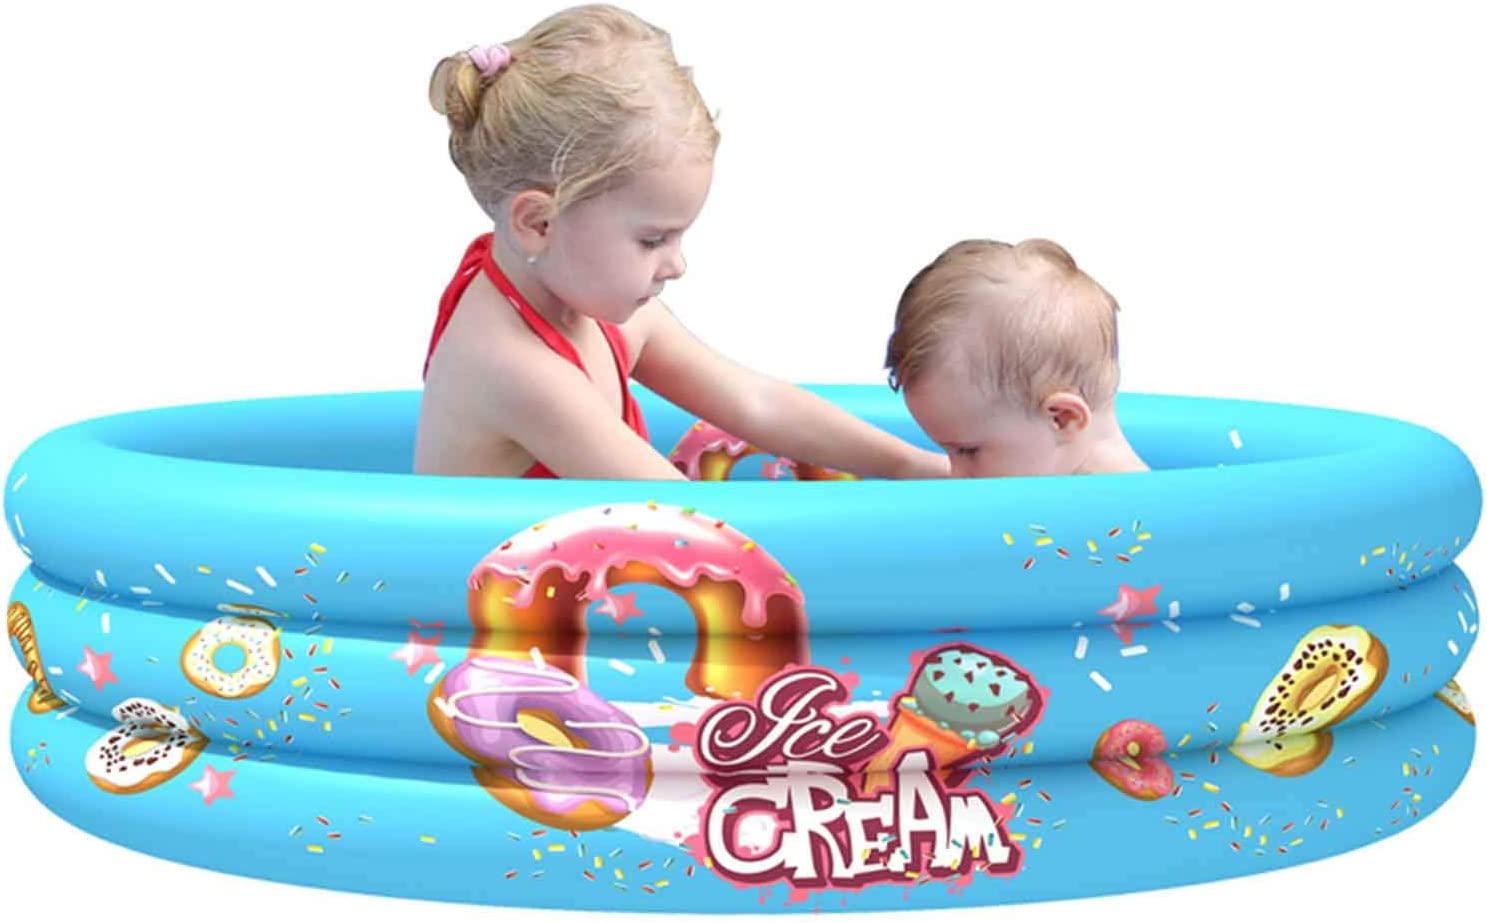 NANZ Inflatable Swimming Pool Family up Many popular brands Blow Ki Max 65% OFF for Kiddie